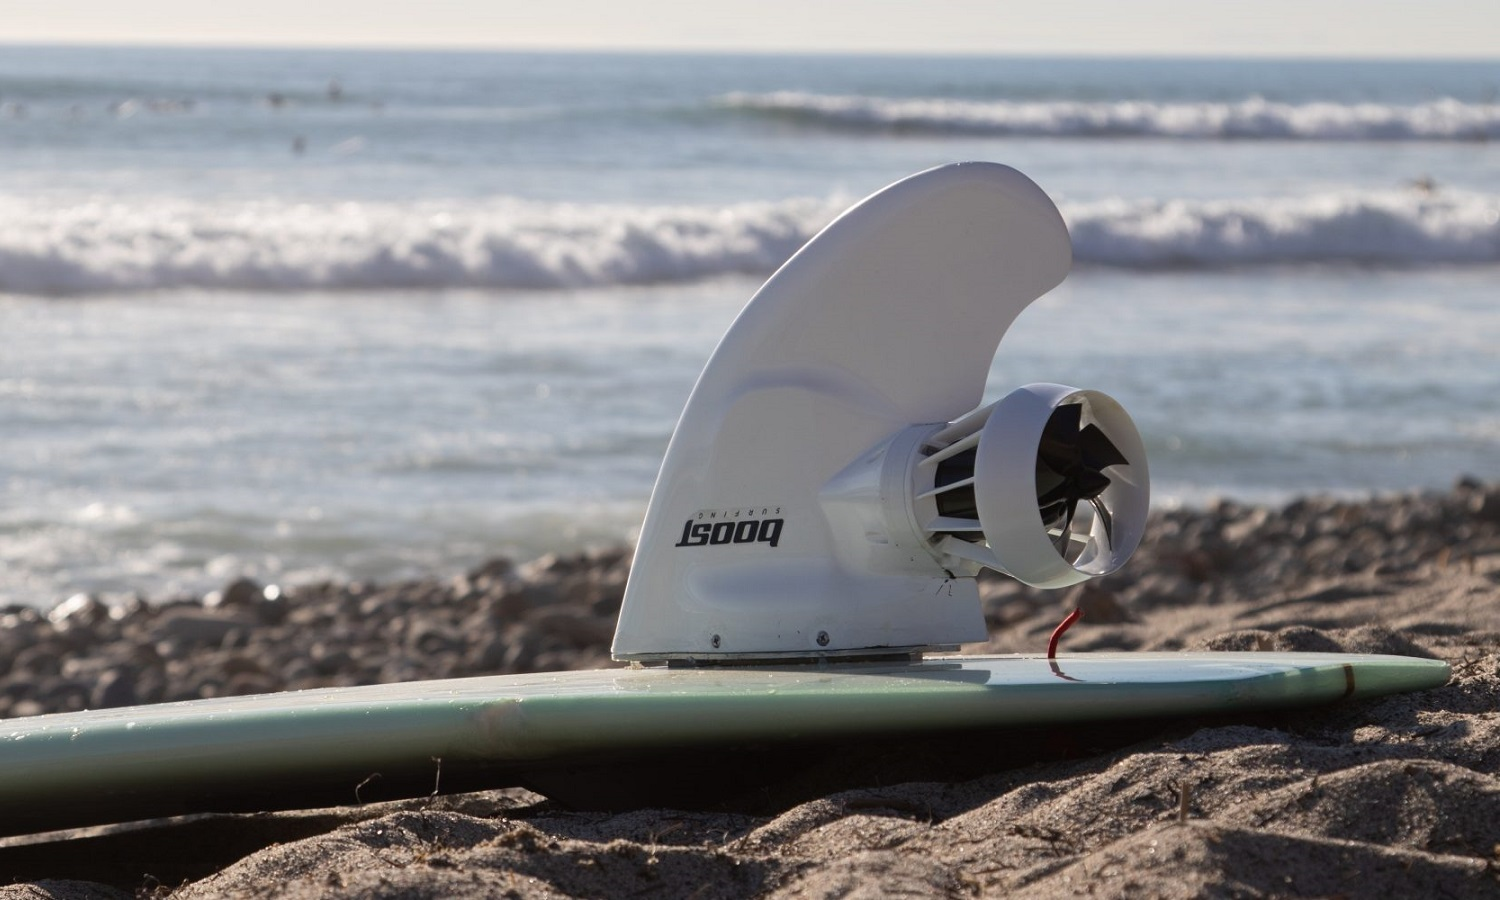 Main Image Electric Motor Surfboard - The Best Choice for Surfing?